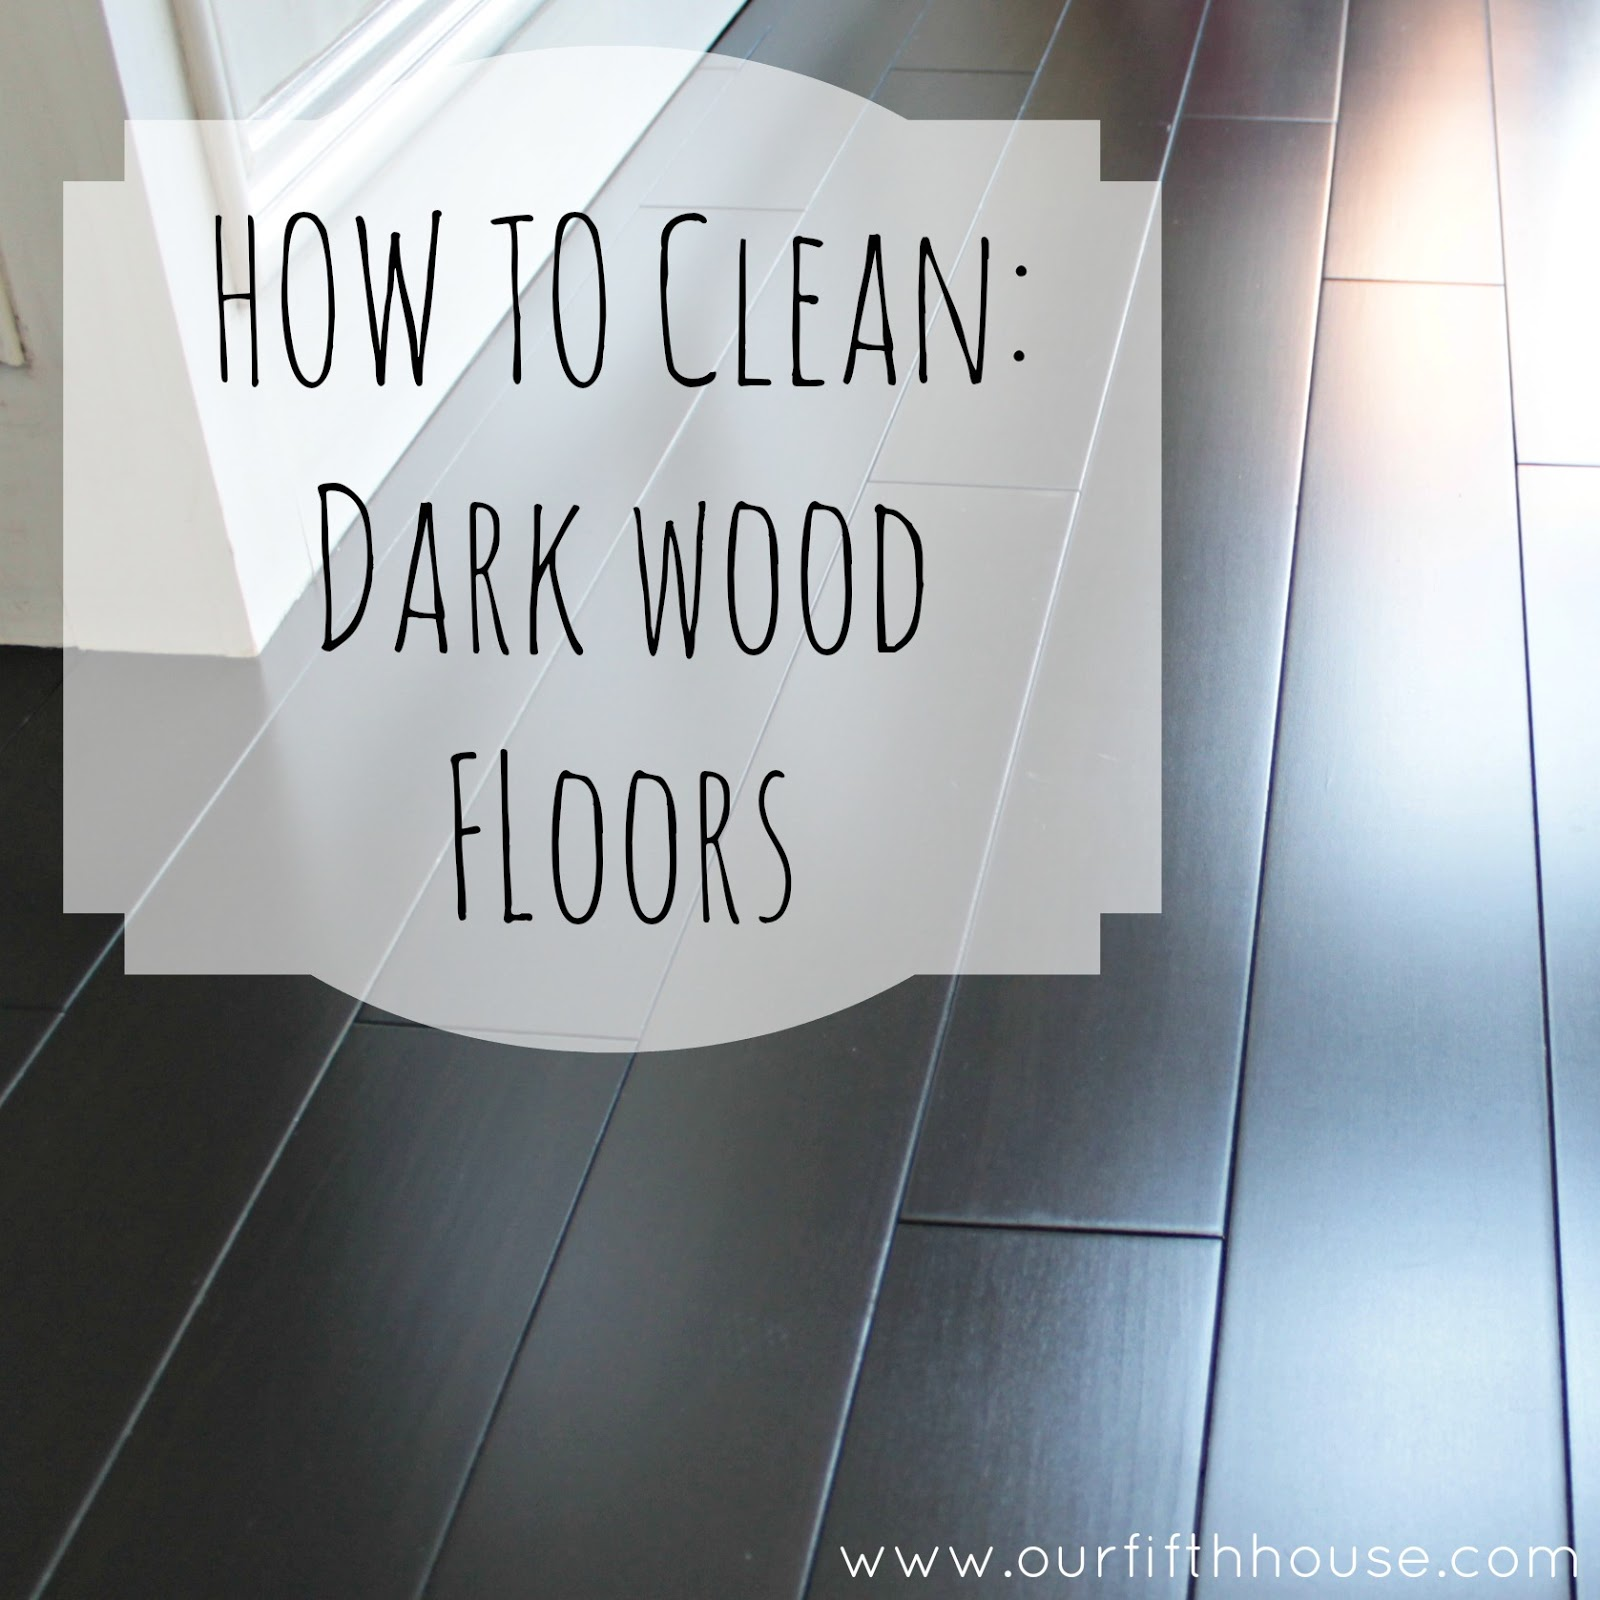 How To Clean Dark Wood Floors Our Fifth House - Clean tile floors without residue